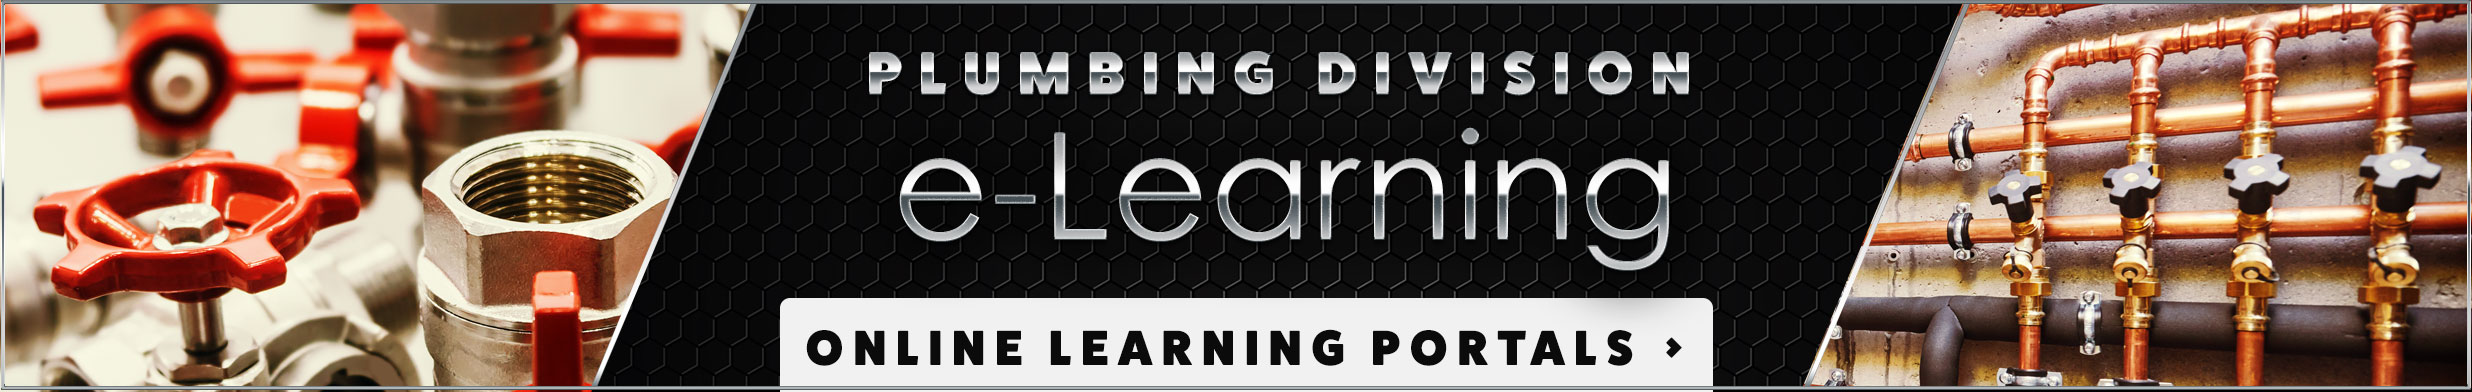 PACE Plumbing Division e-Learning